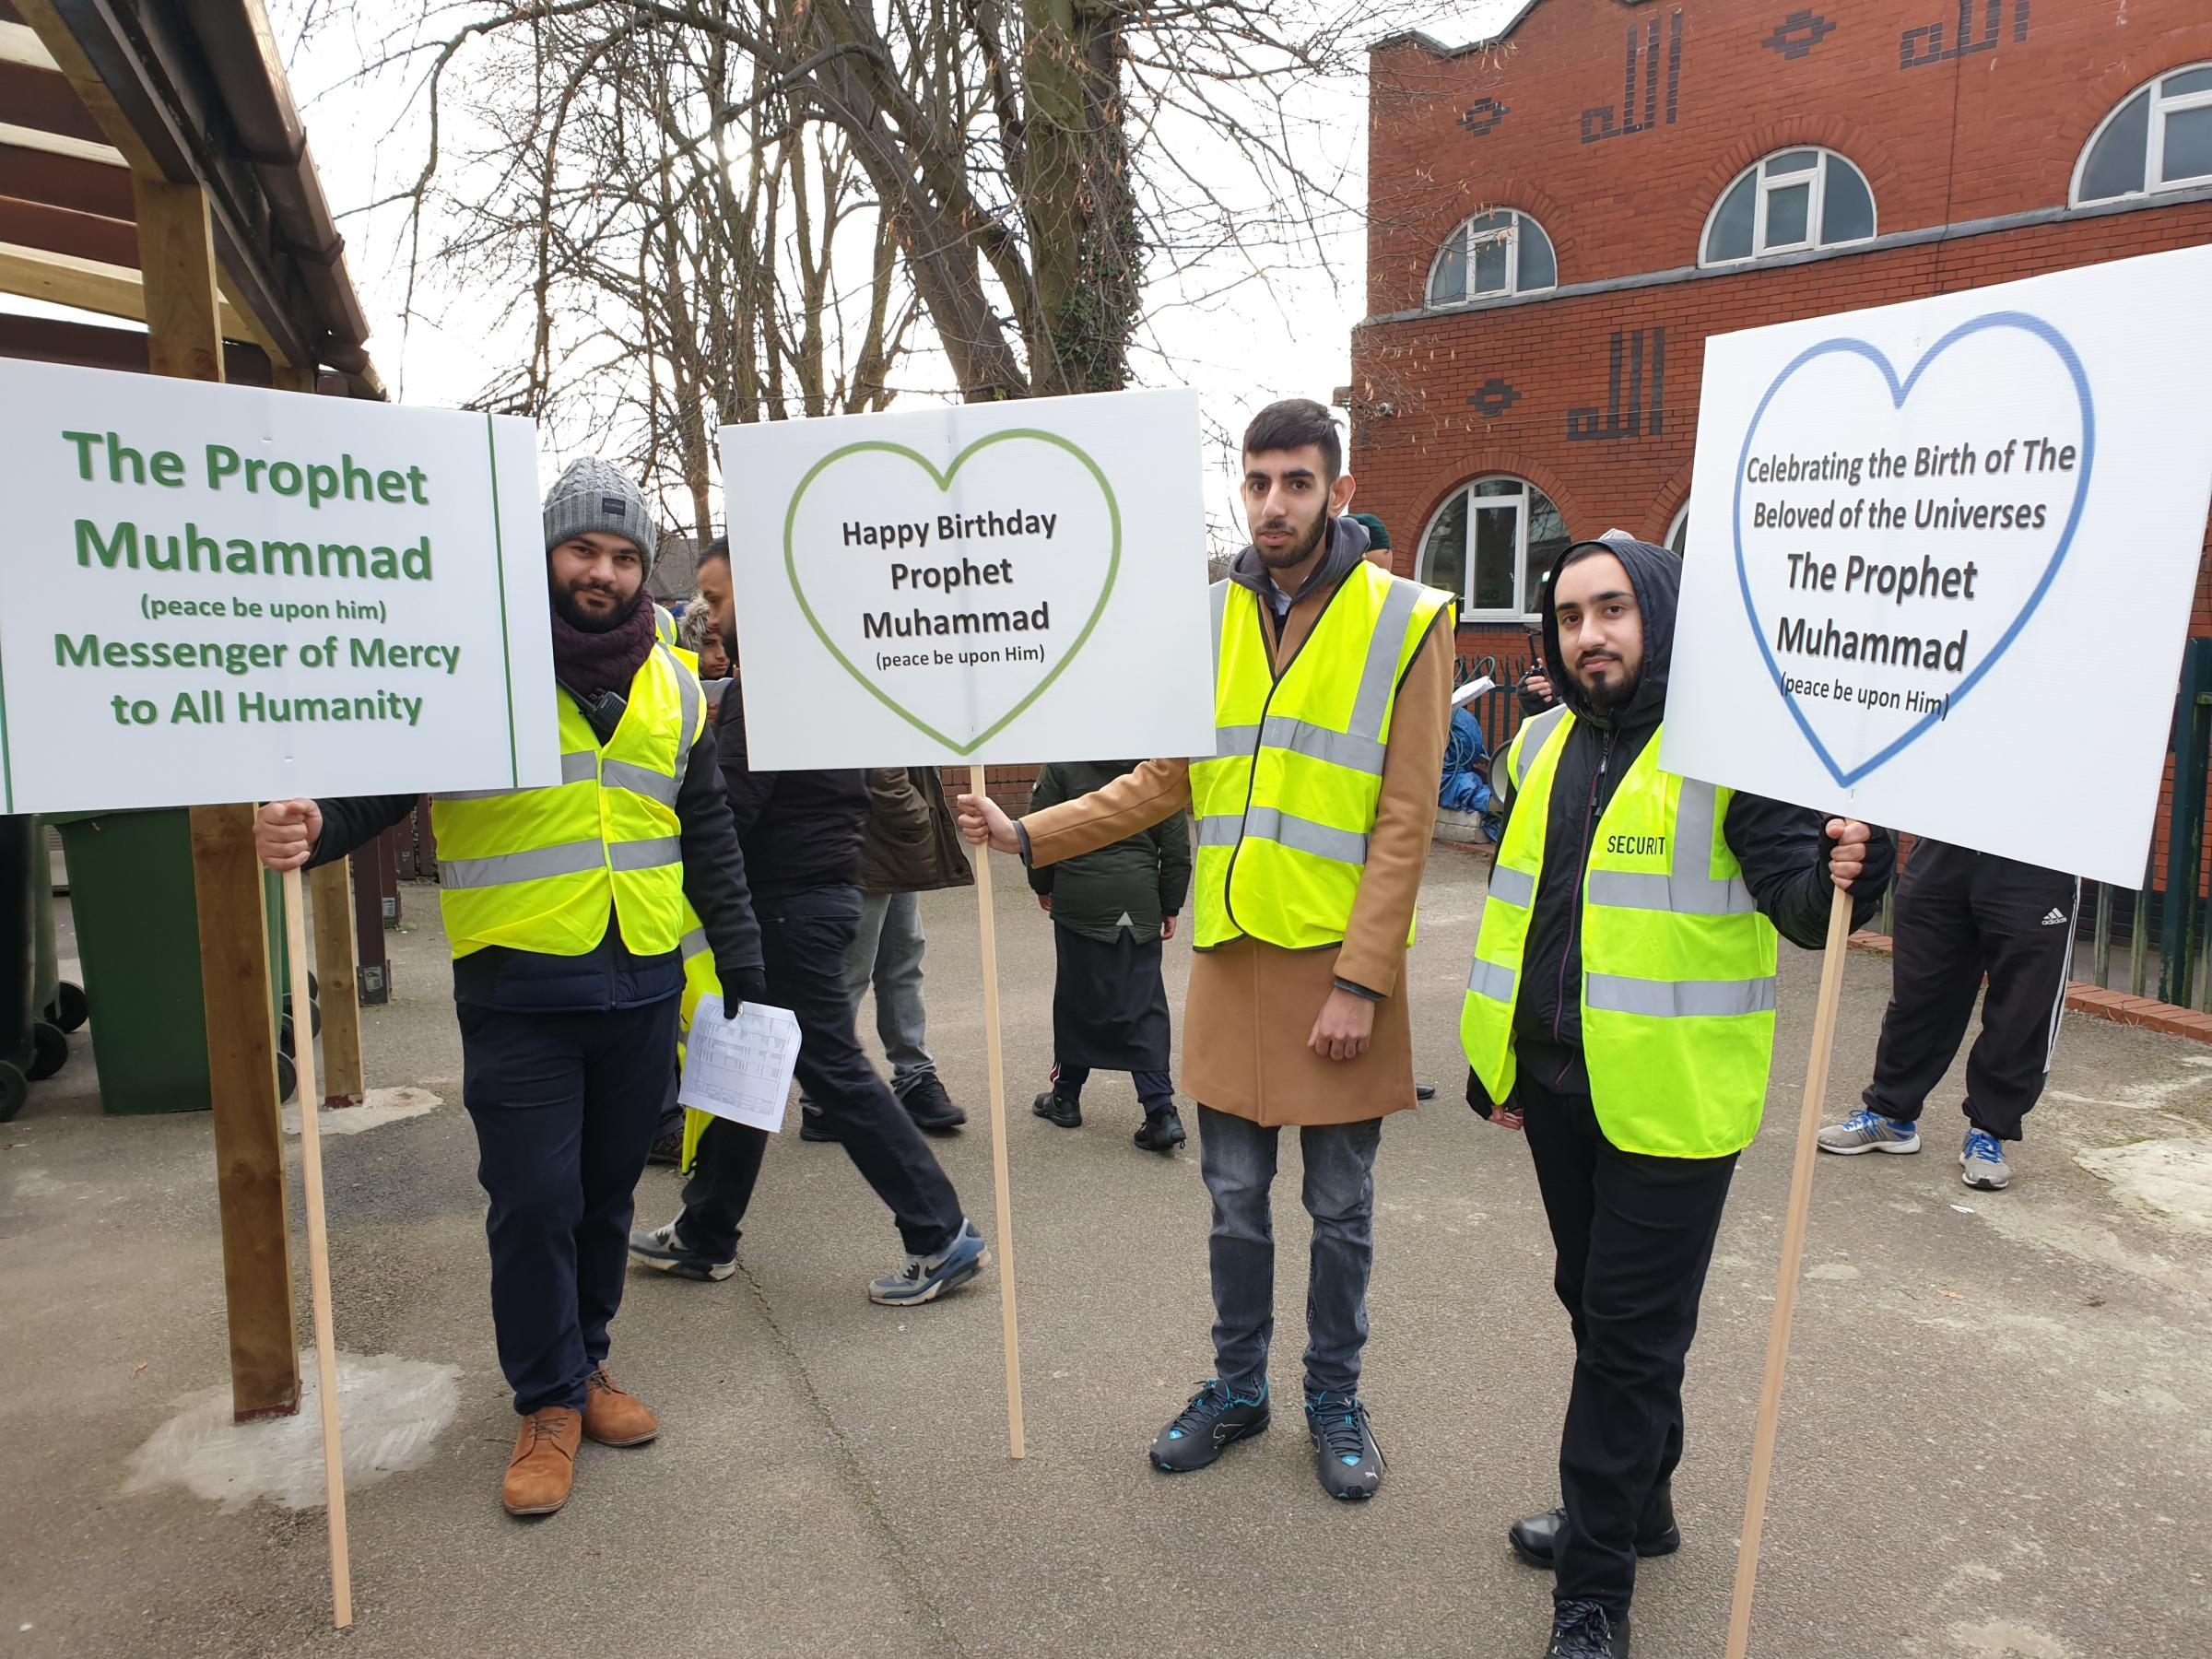 Around 500 people marched through the streets of Watford